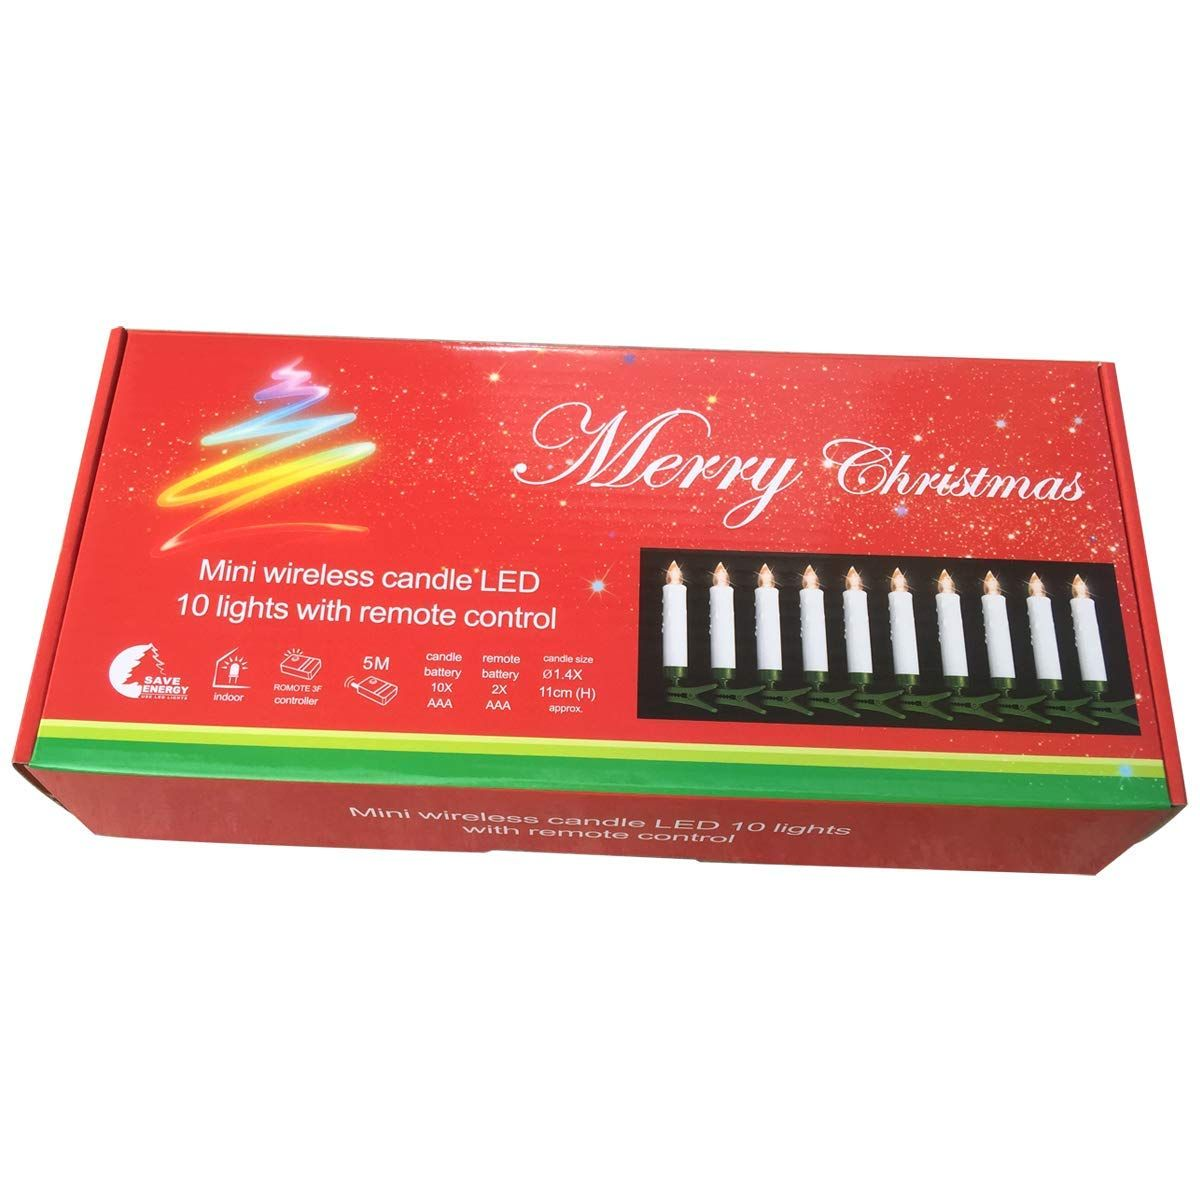 (10 Pcs) Candle Lights for Christmas Tree with